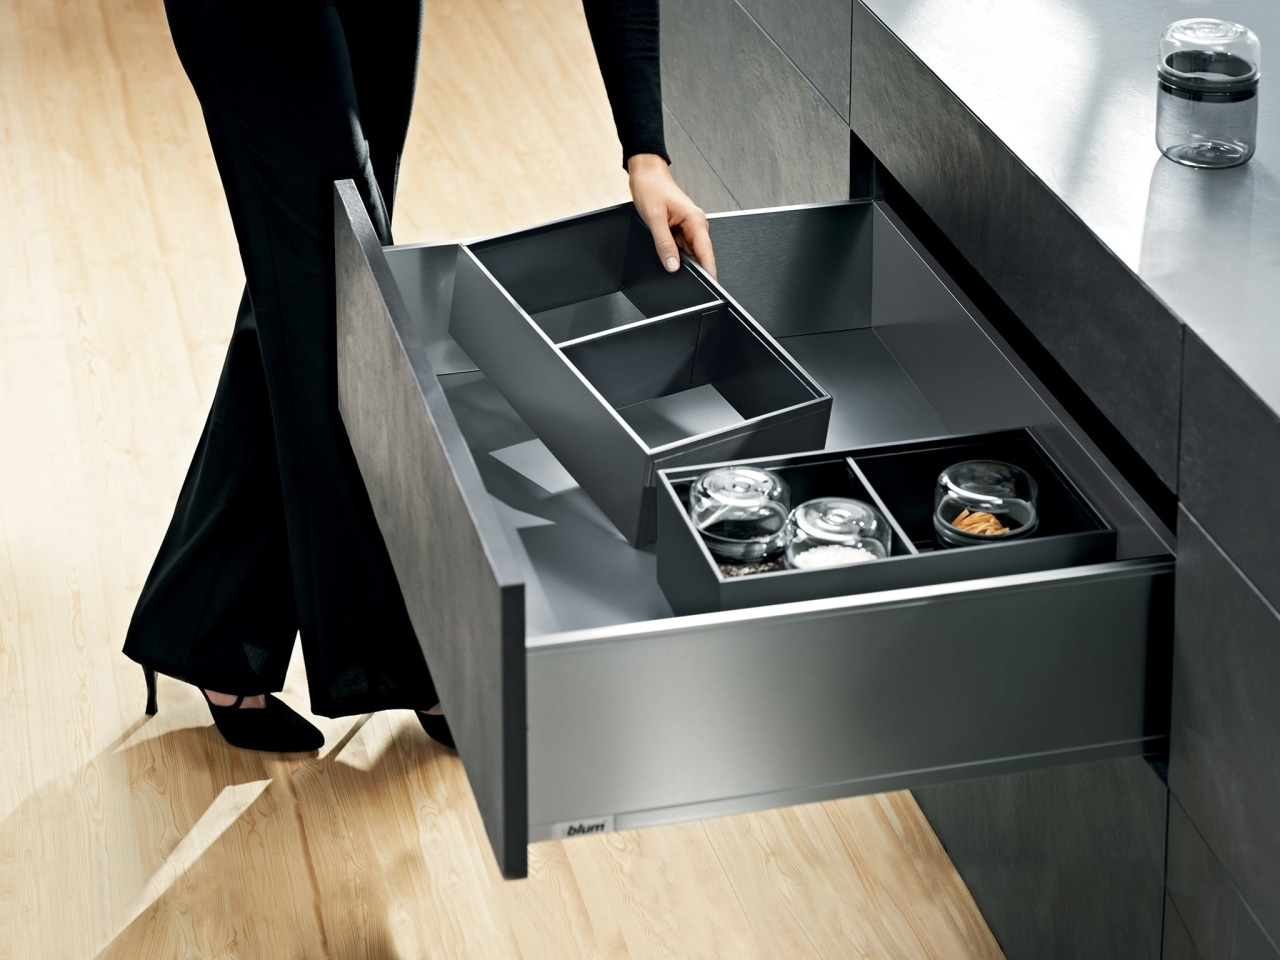 Blum New Zealand desk, drawer, floor, furniture, product, product design, sink, table, black